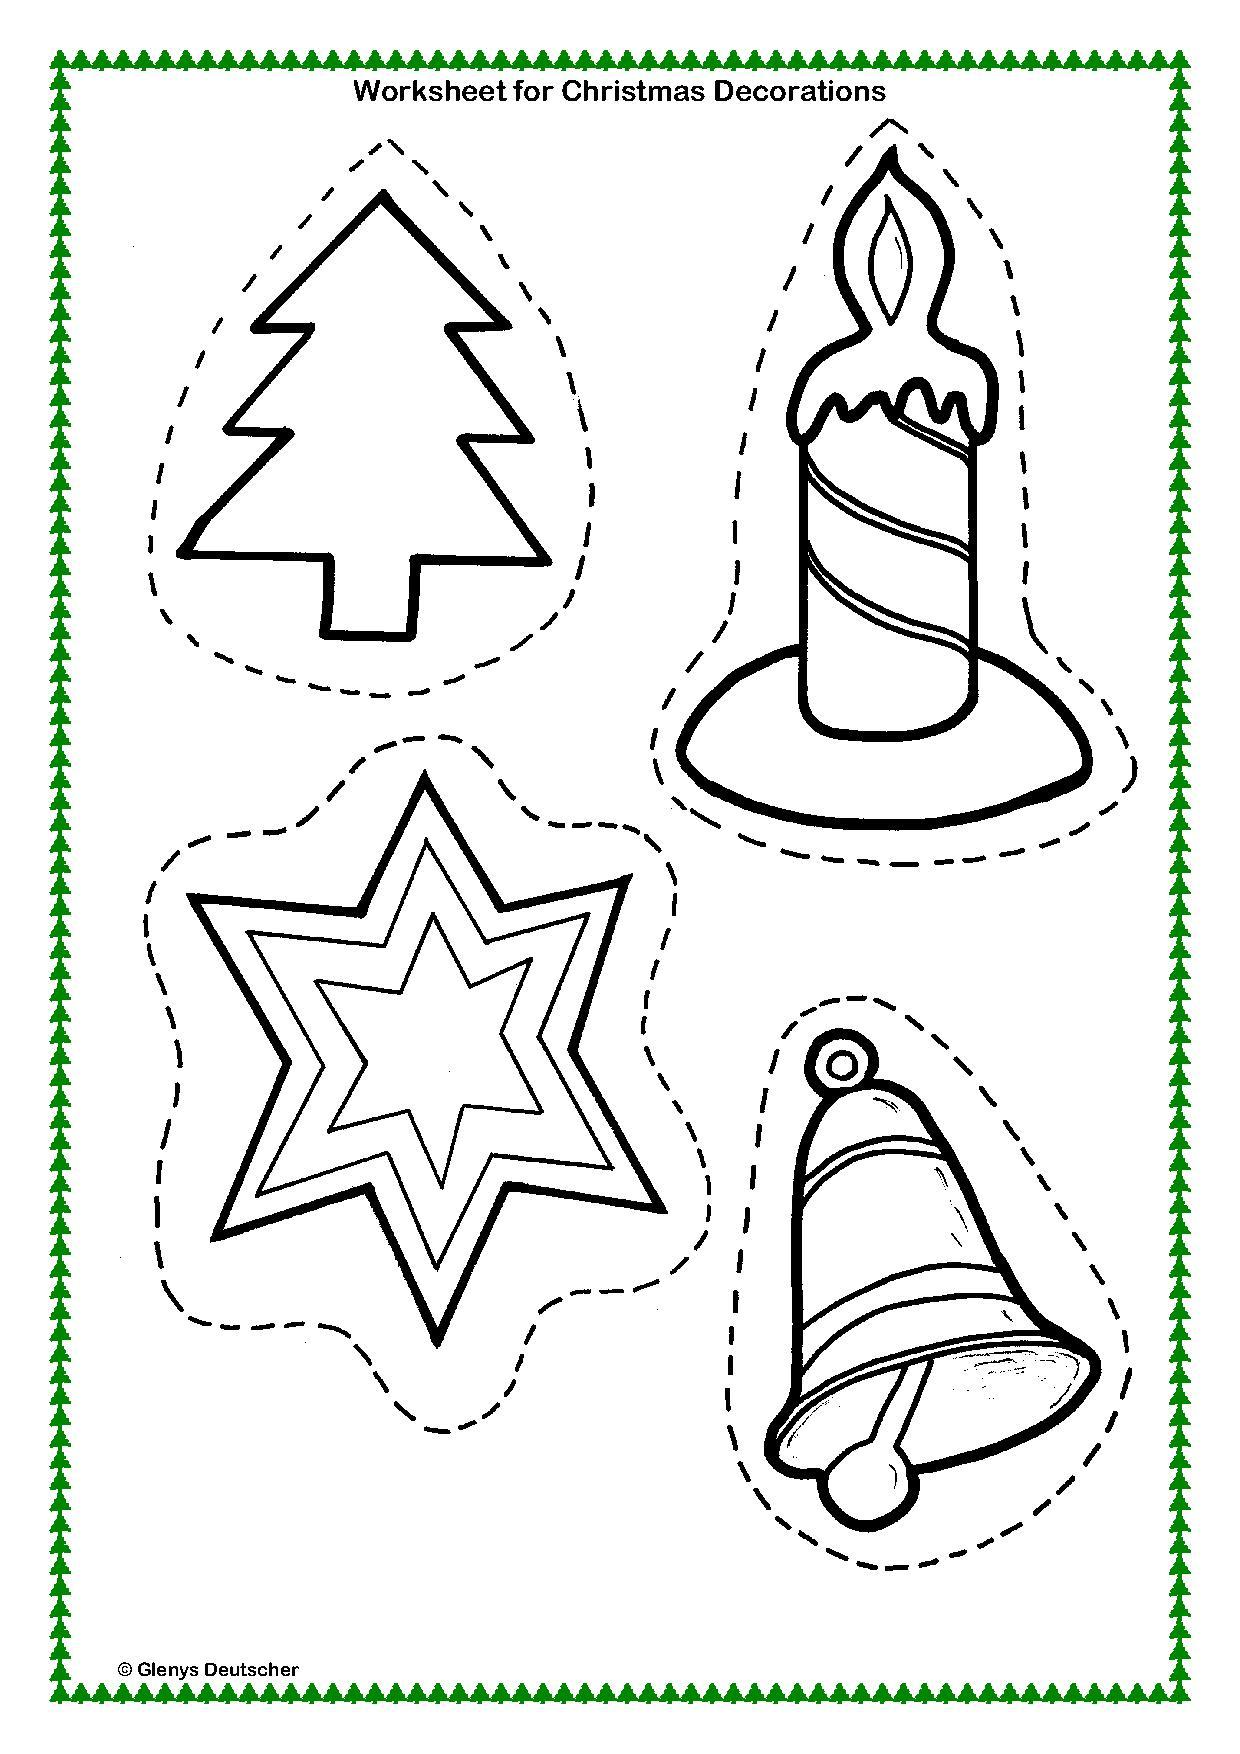 worksheet. Christmas Activity Worksheets. Worksheet Fun Worksheet ...